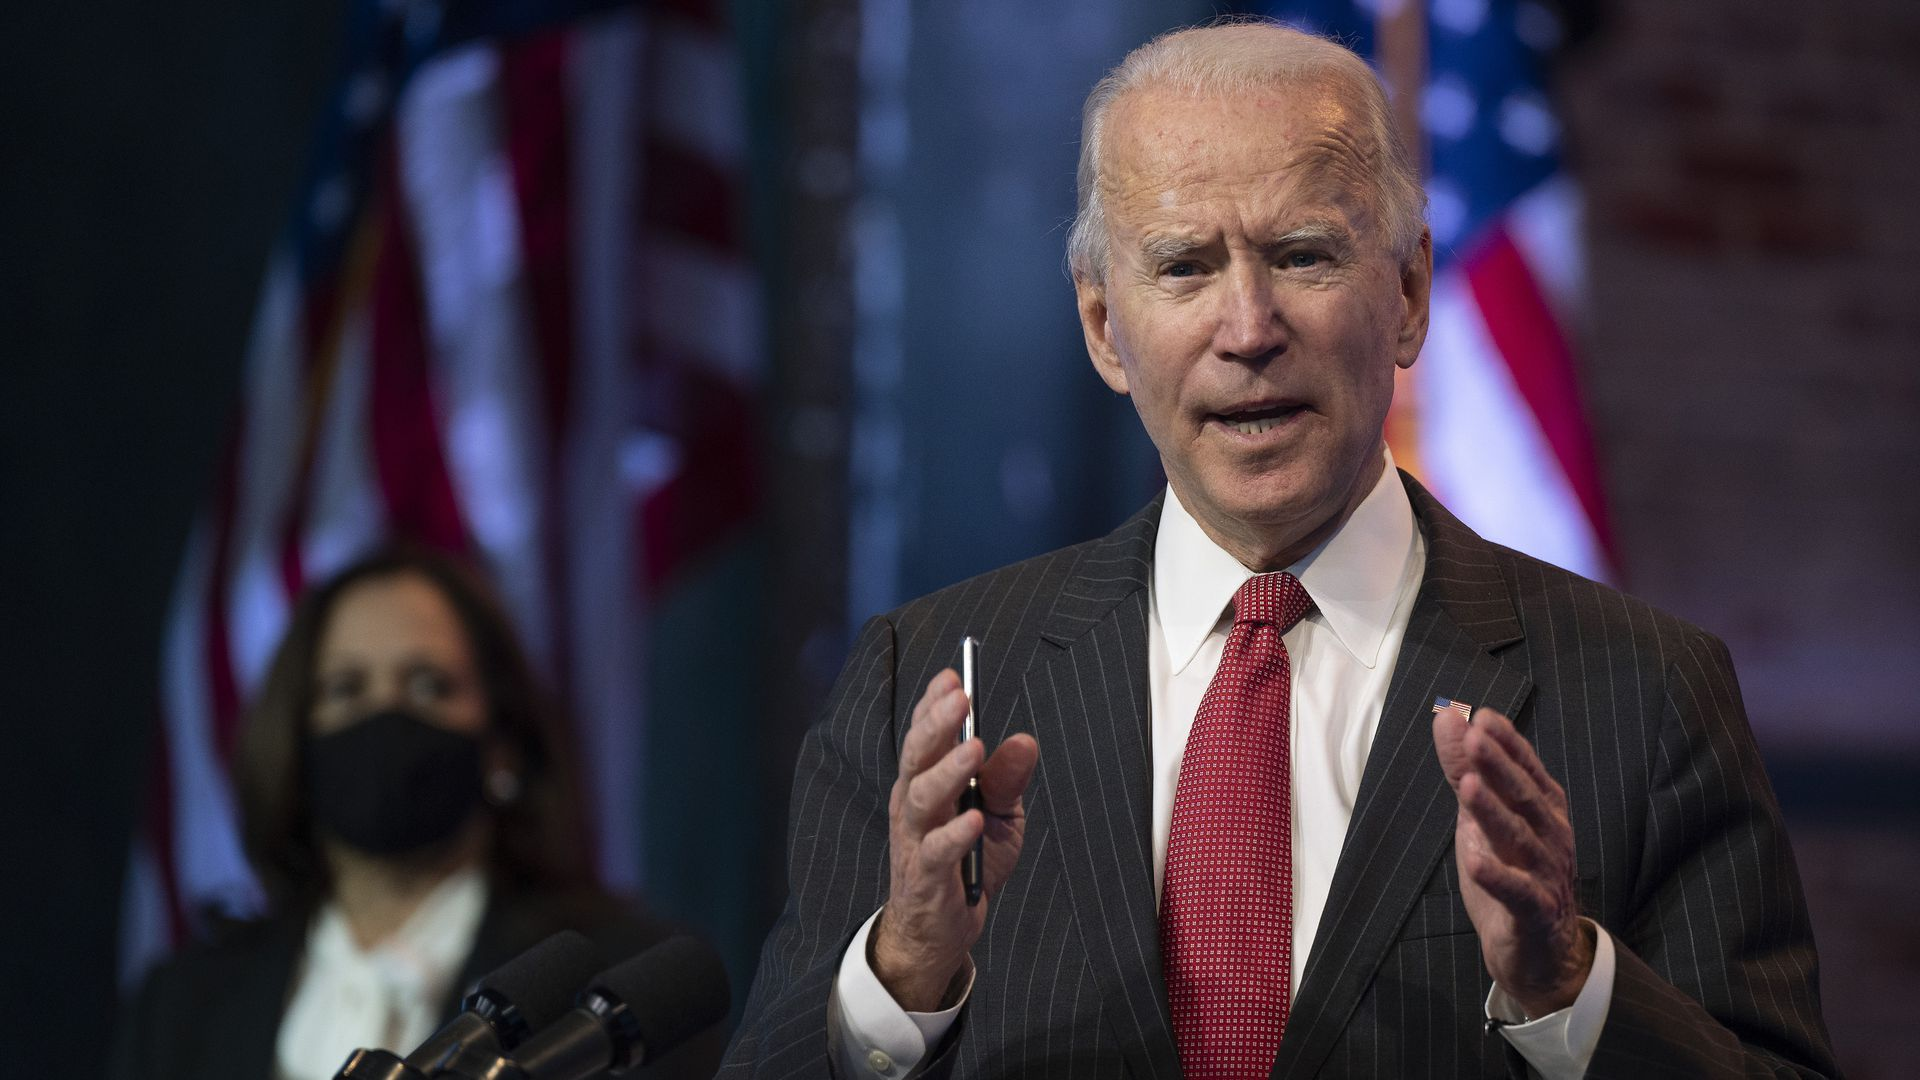 President-elect Joe Biden uses his hands for emphasis as he makes remarks